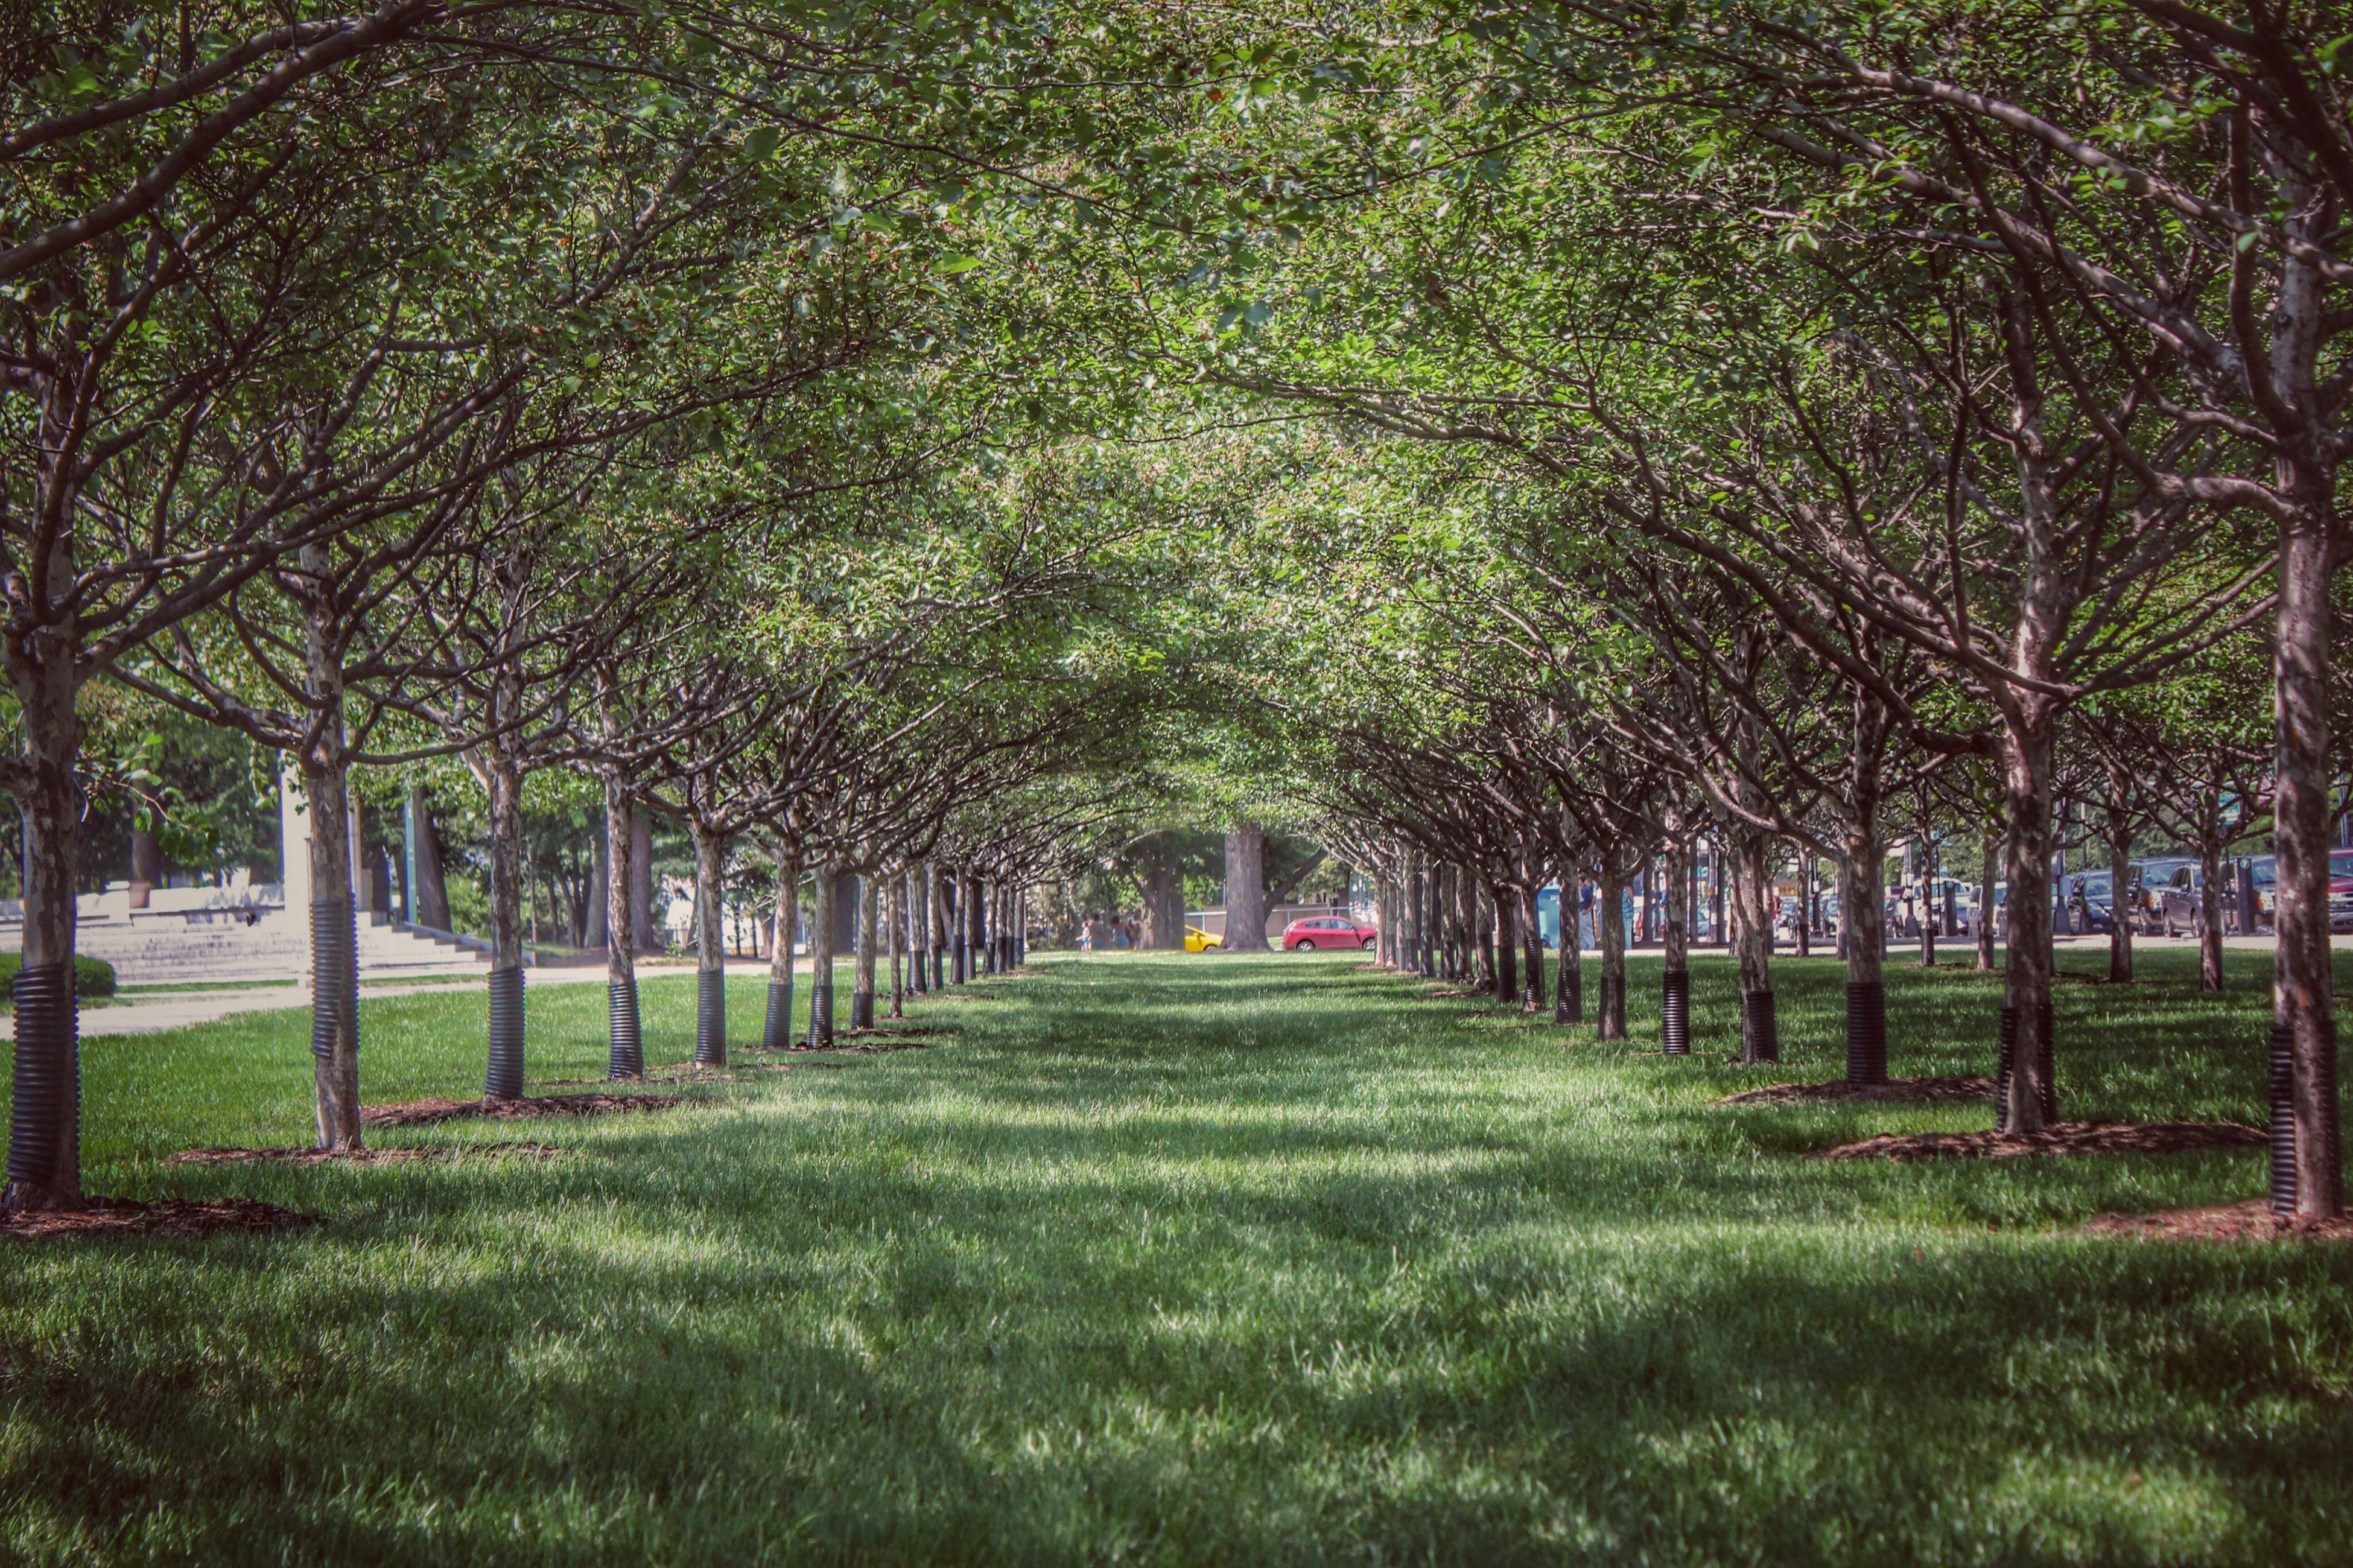 tree, grass, the way forward, green color, growth, park - man made space, treelined, diminishing perspective, footpath, nature, tranquility, branch, vanishing point, park, tranquil scene, walkway, pathway, beauty in nature, tree trunk, in a row